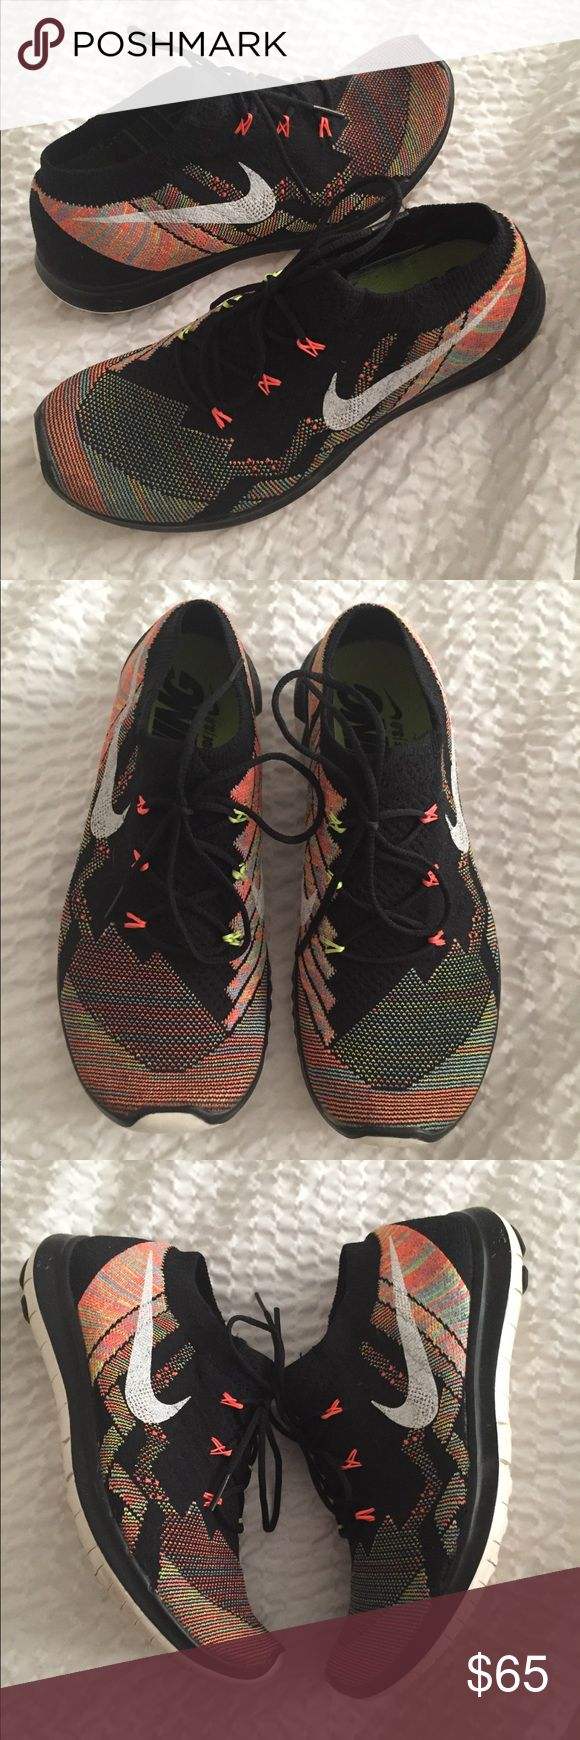 Nike free flyknit Like new black and multi color Nike free flyknit. Size ladies 7.5. Worn twice. Nike Shoes Sneakers